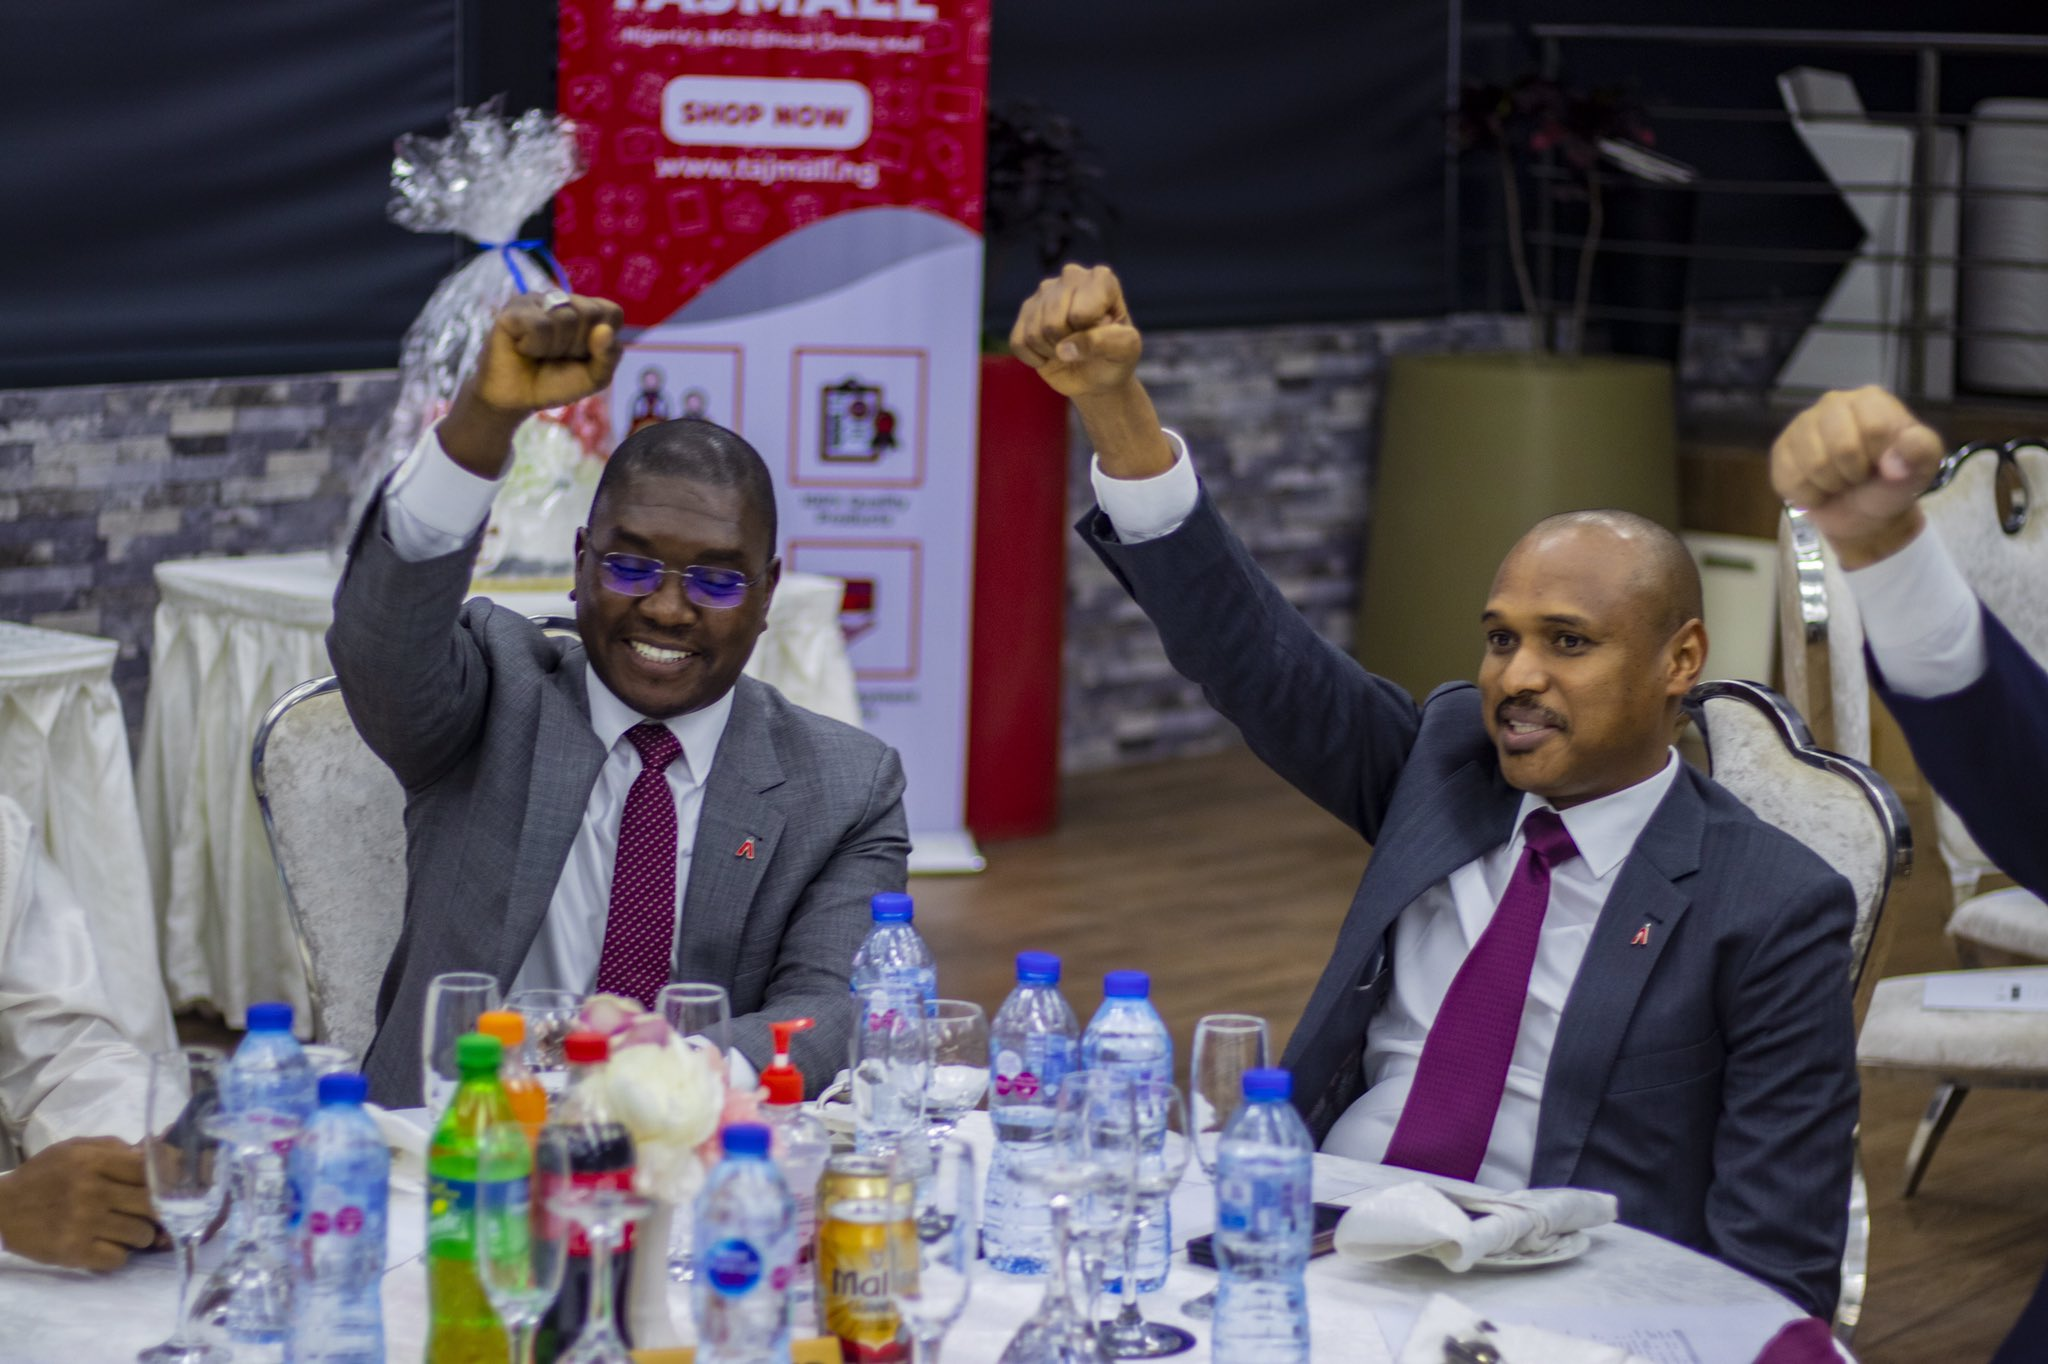 Photo News Brandspurng TAJBank Celebrates 1st Anniversary...breaks even in 9 months of operations